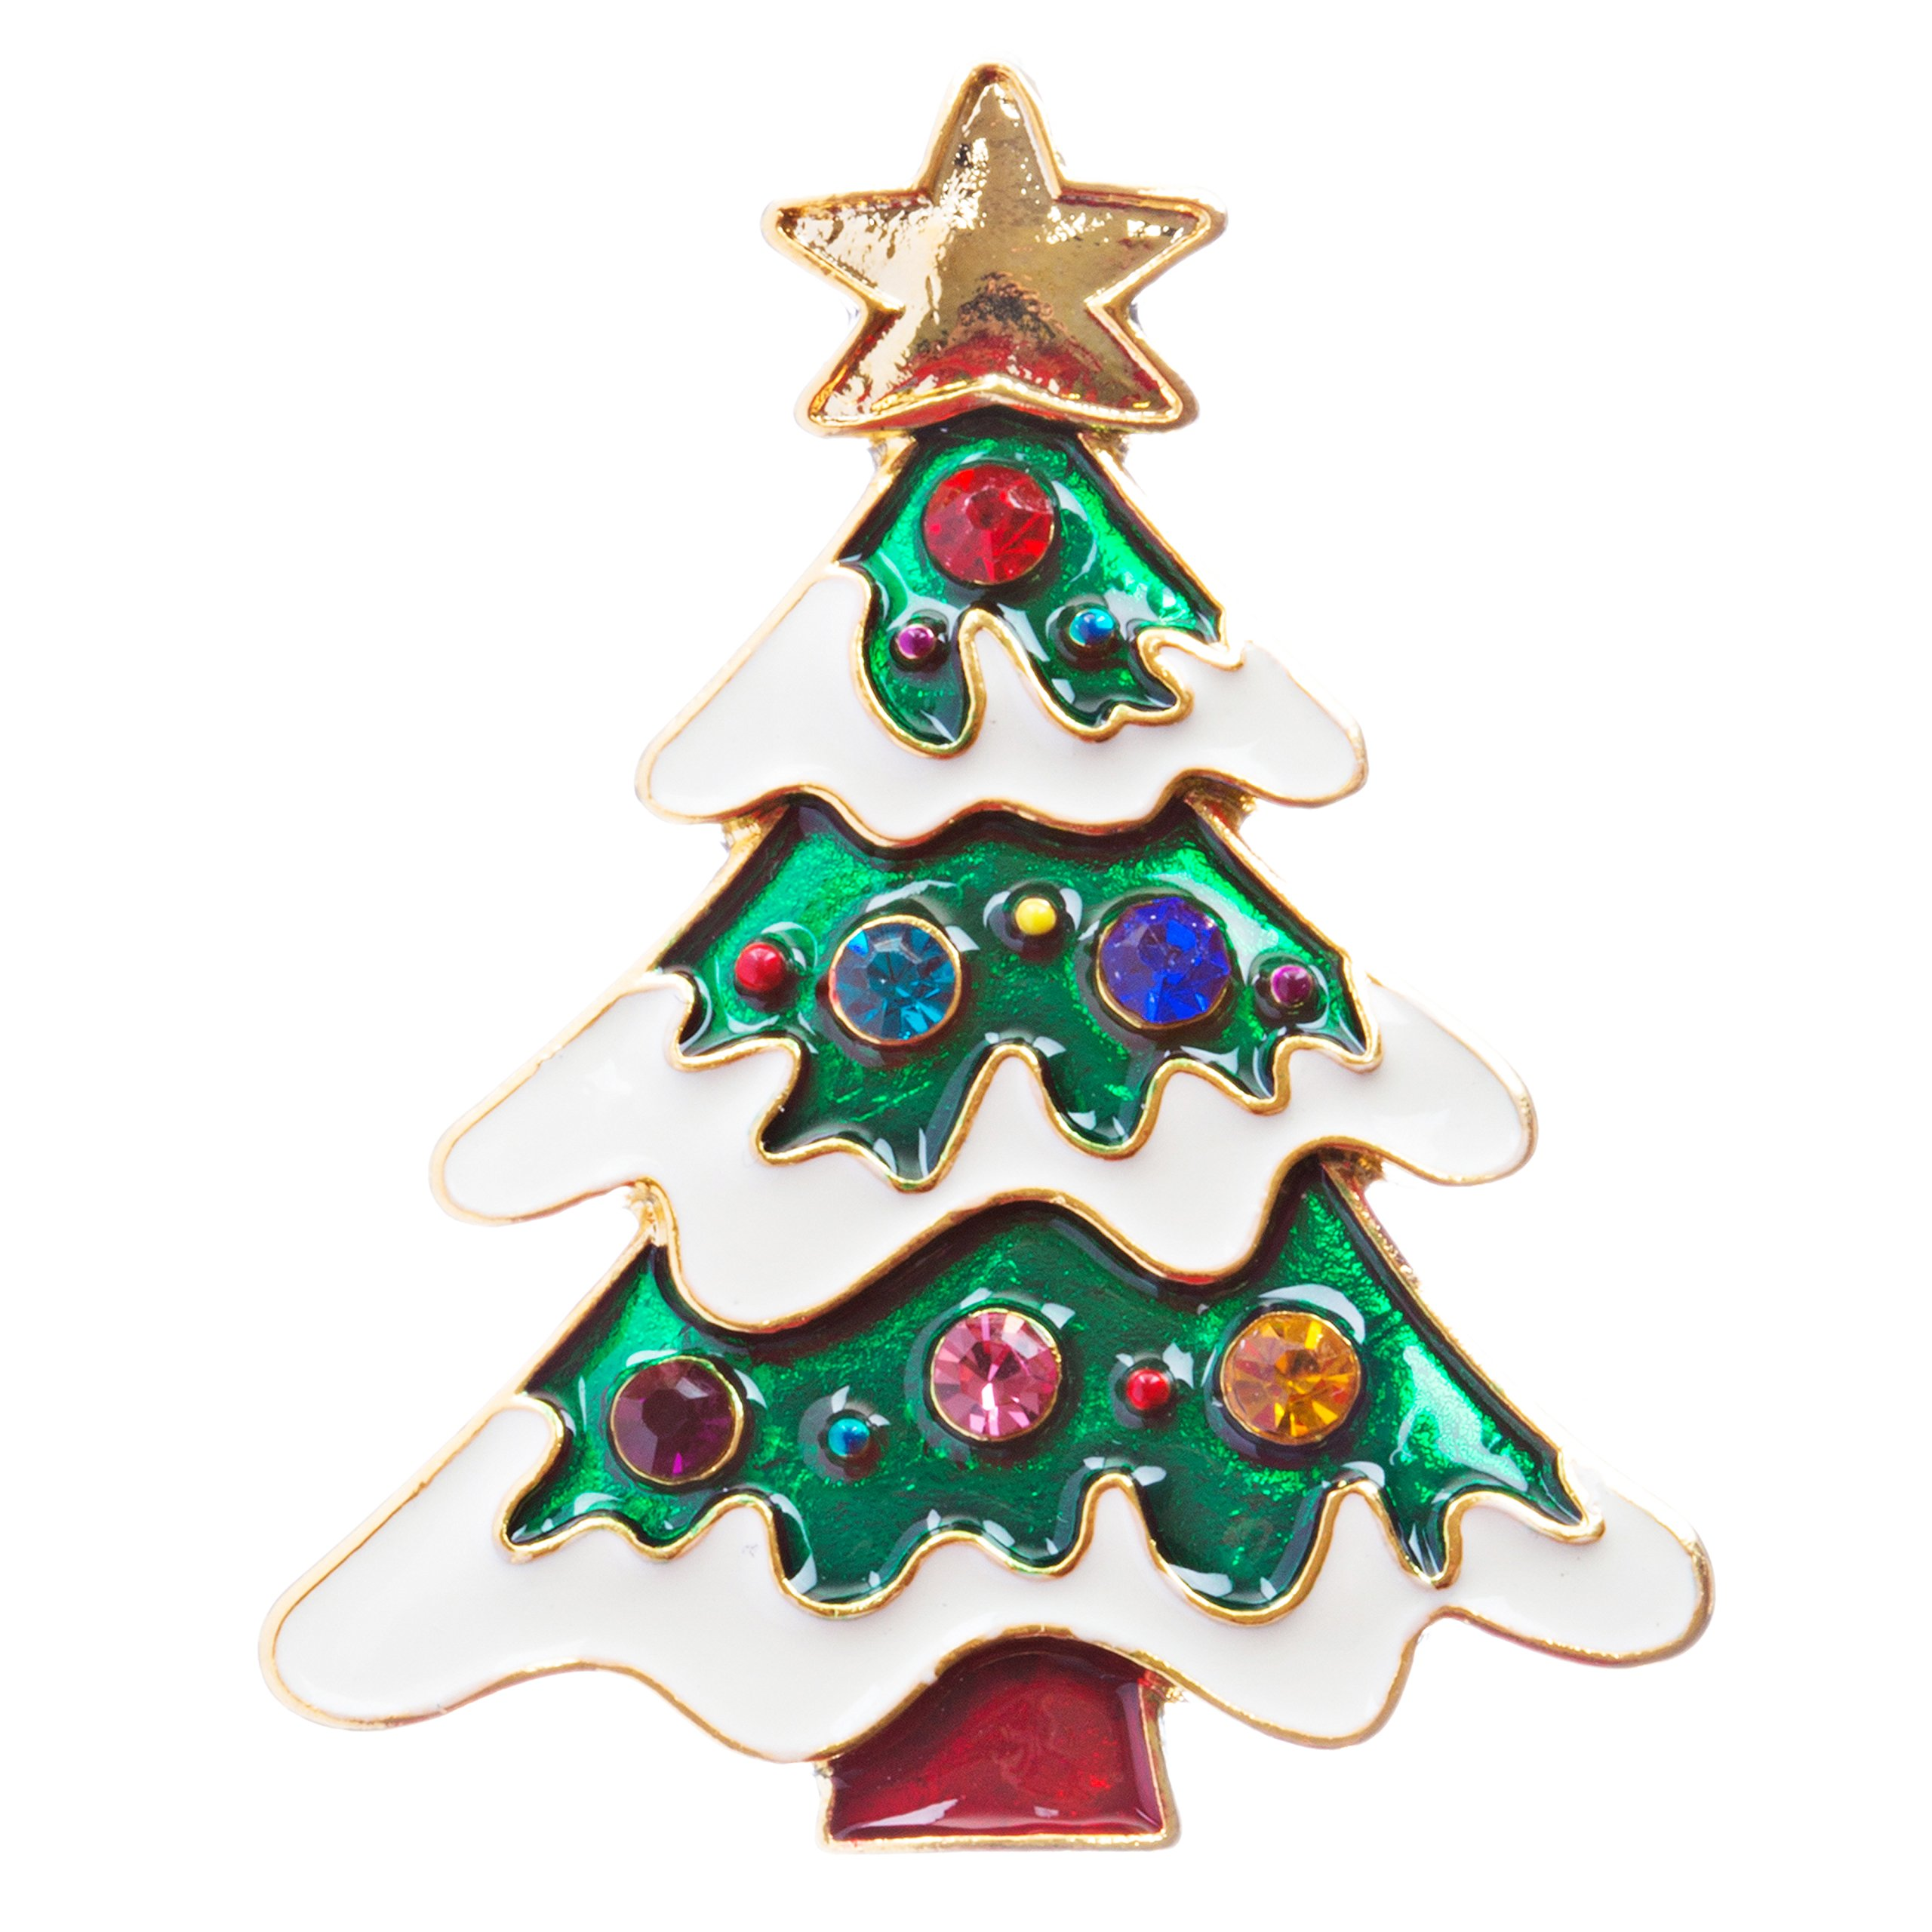 ACCESSORIESFOREVER Christmas Jewelry Crystal Rhinestone Holiday Charming Tree Brooch Pin BH138 MT